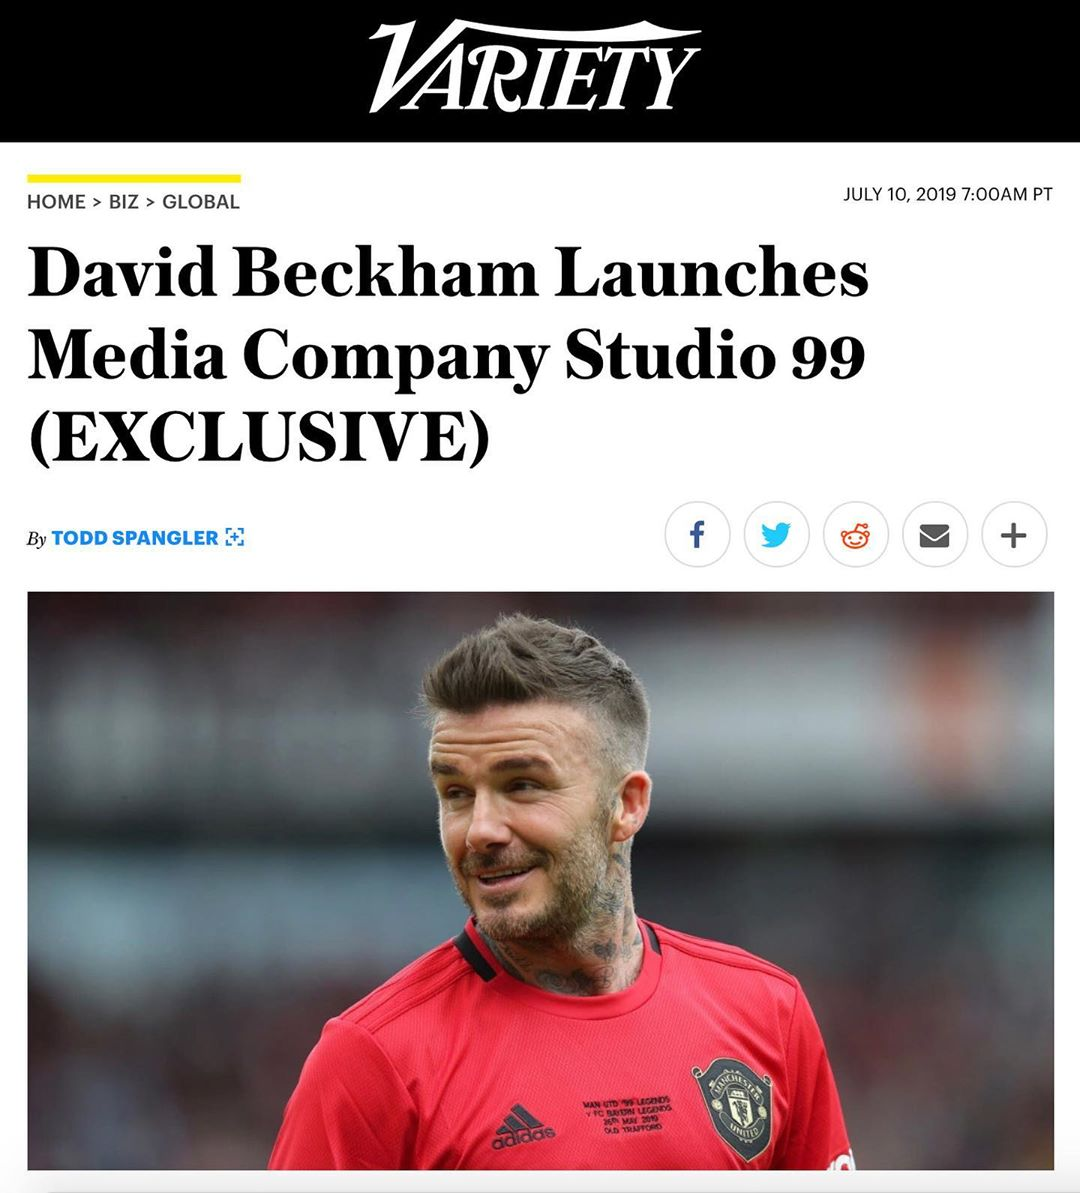 David Beckham Instagram: Really exciting times ahead! ...